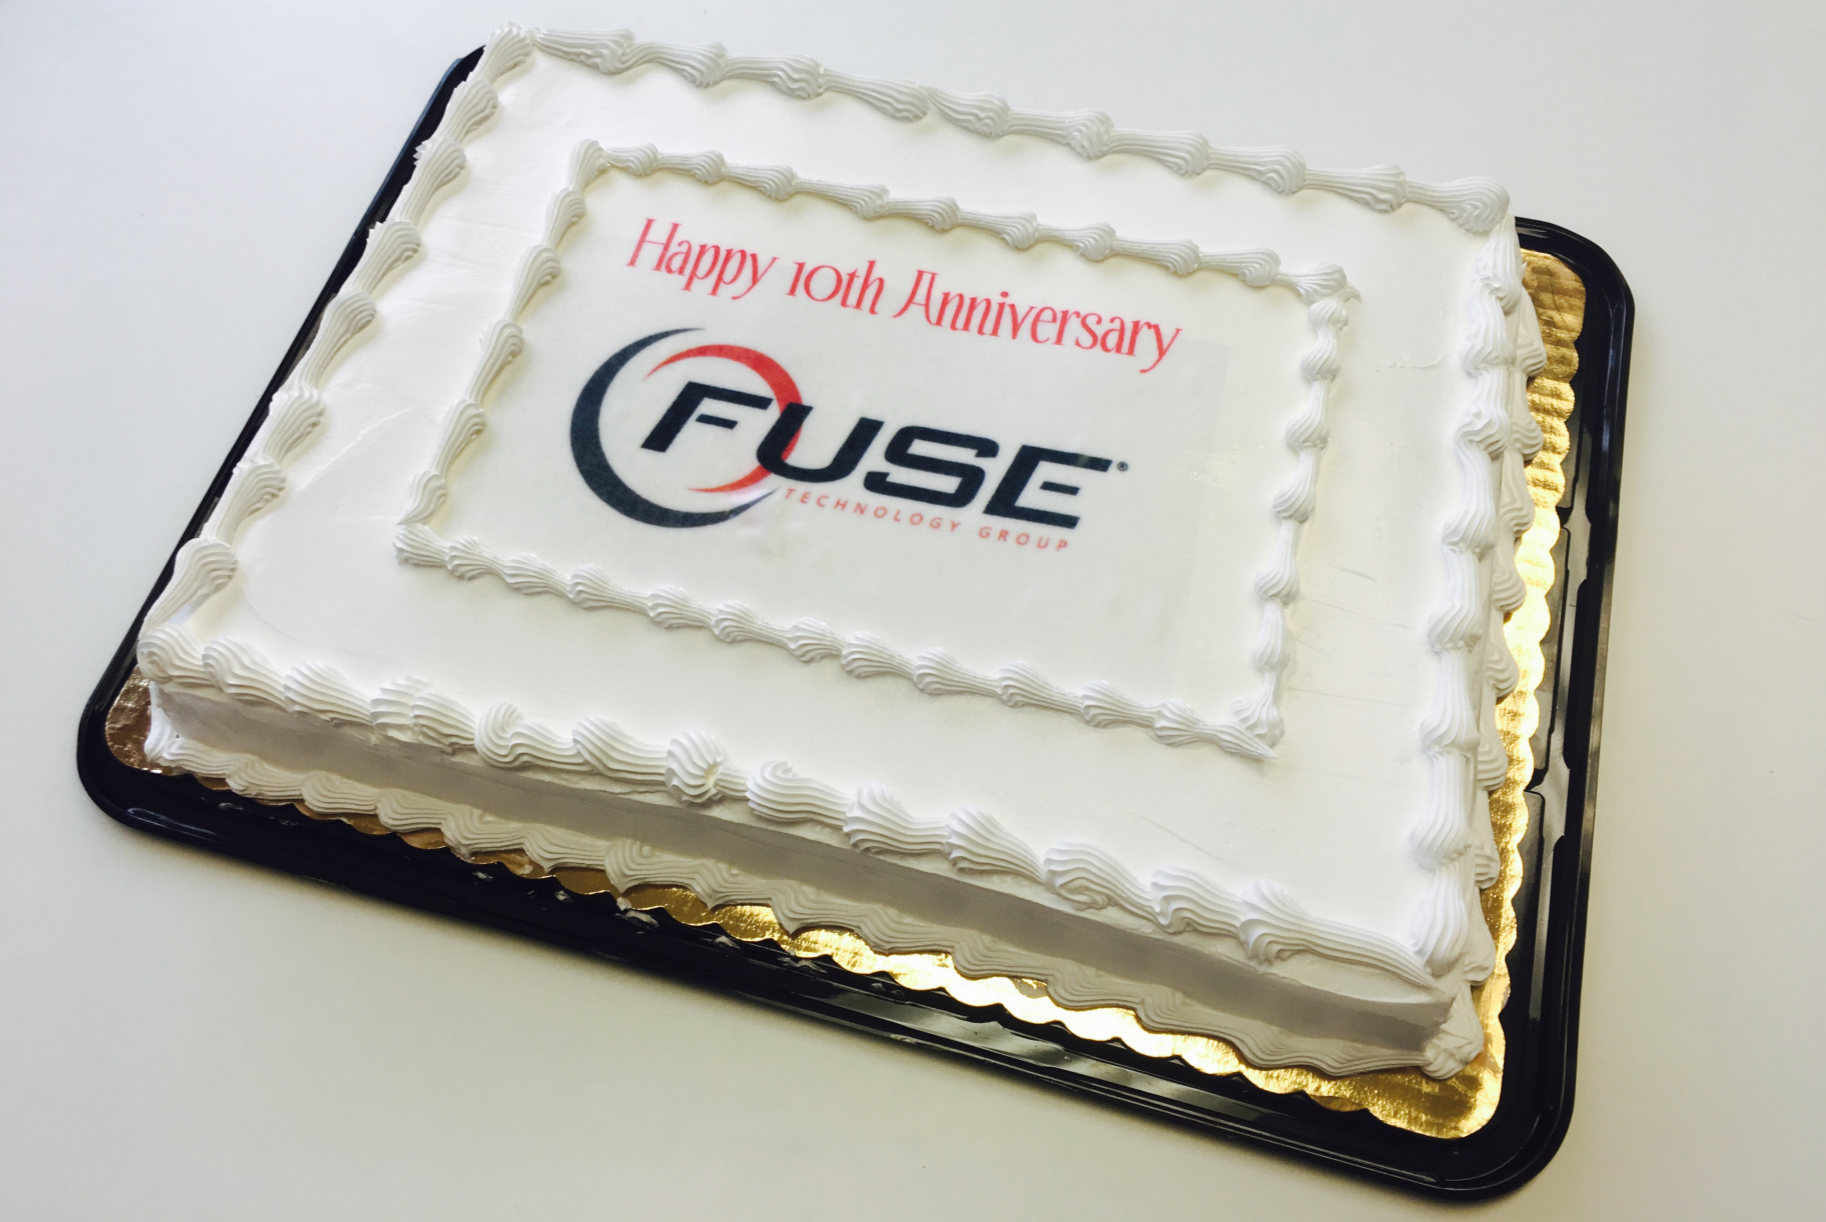 Fuse 10 Year Anniversary